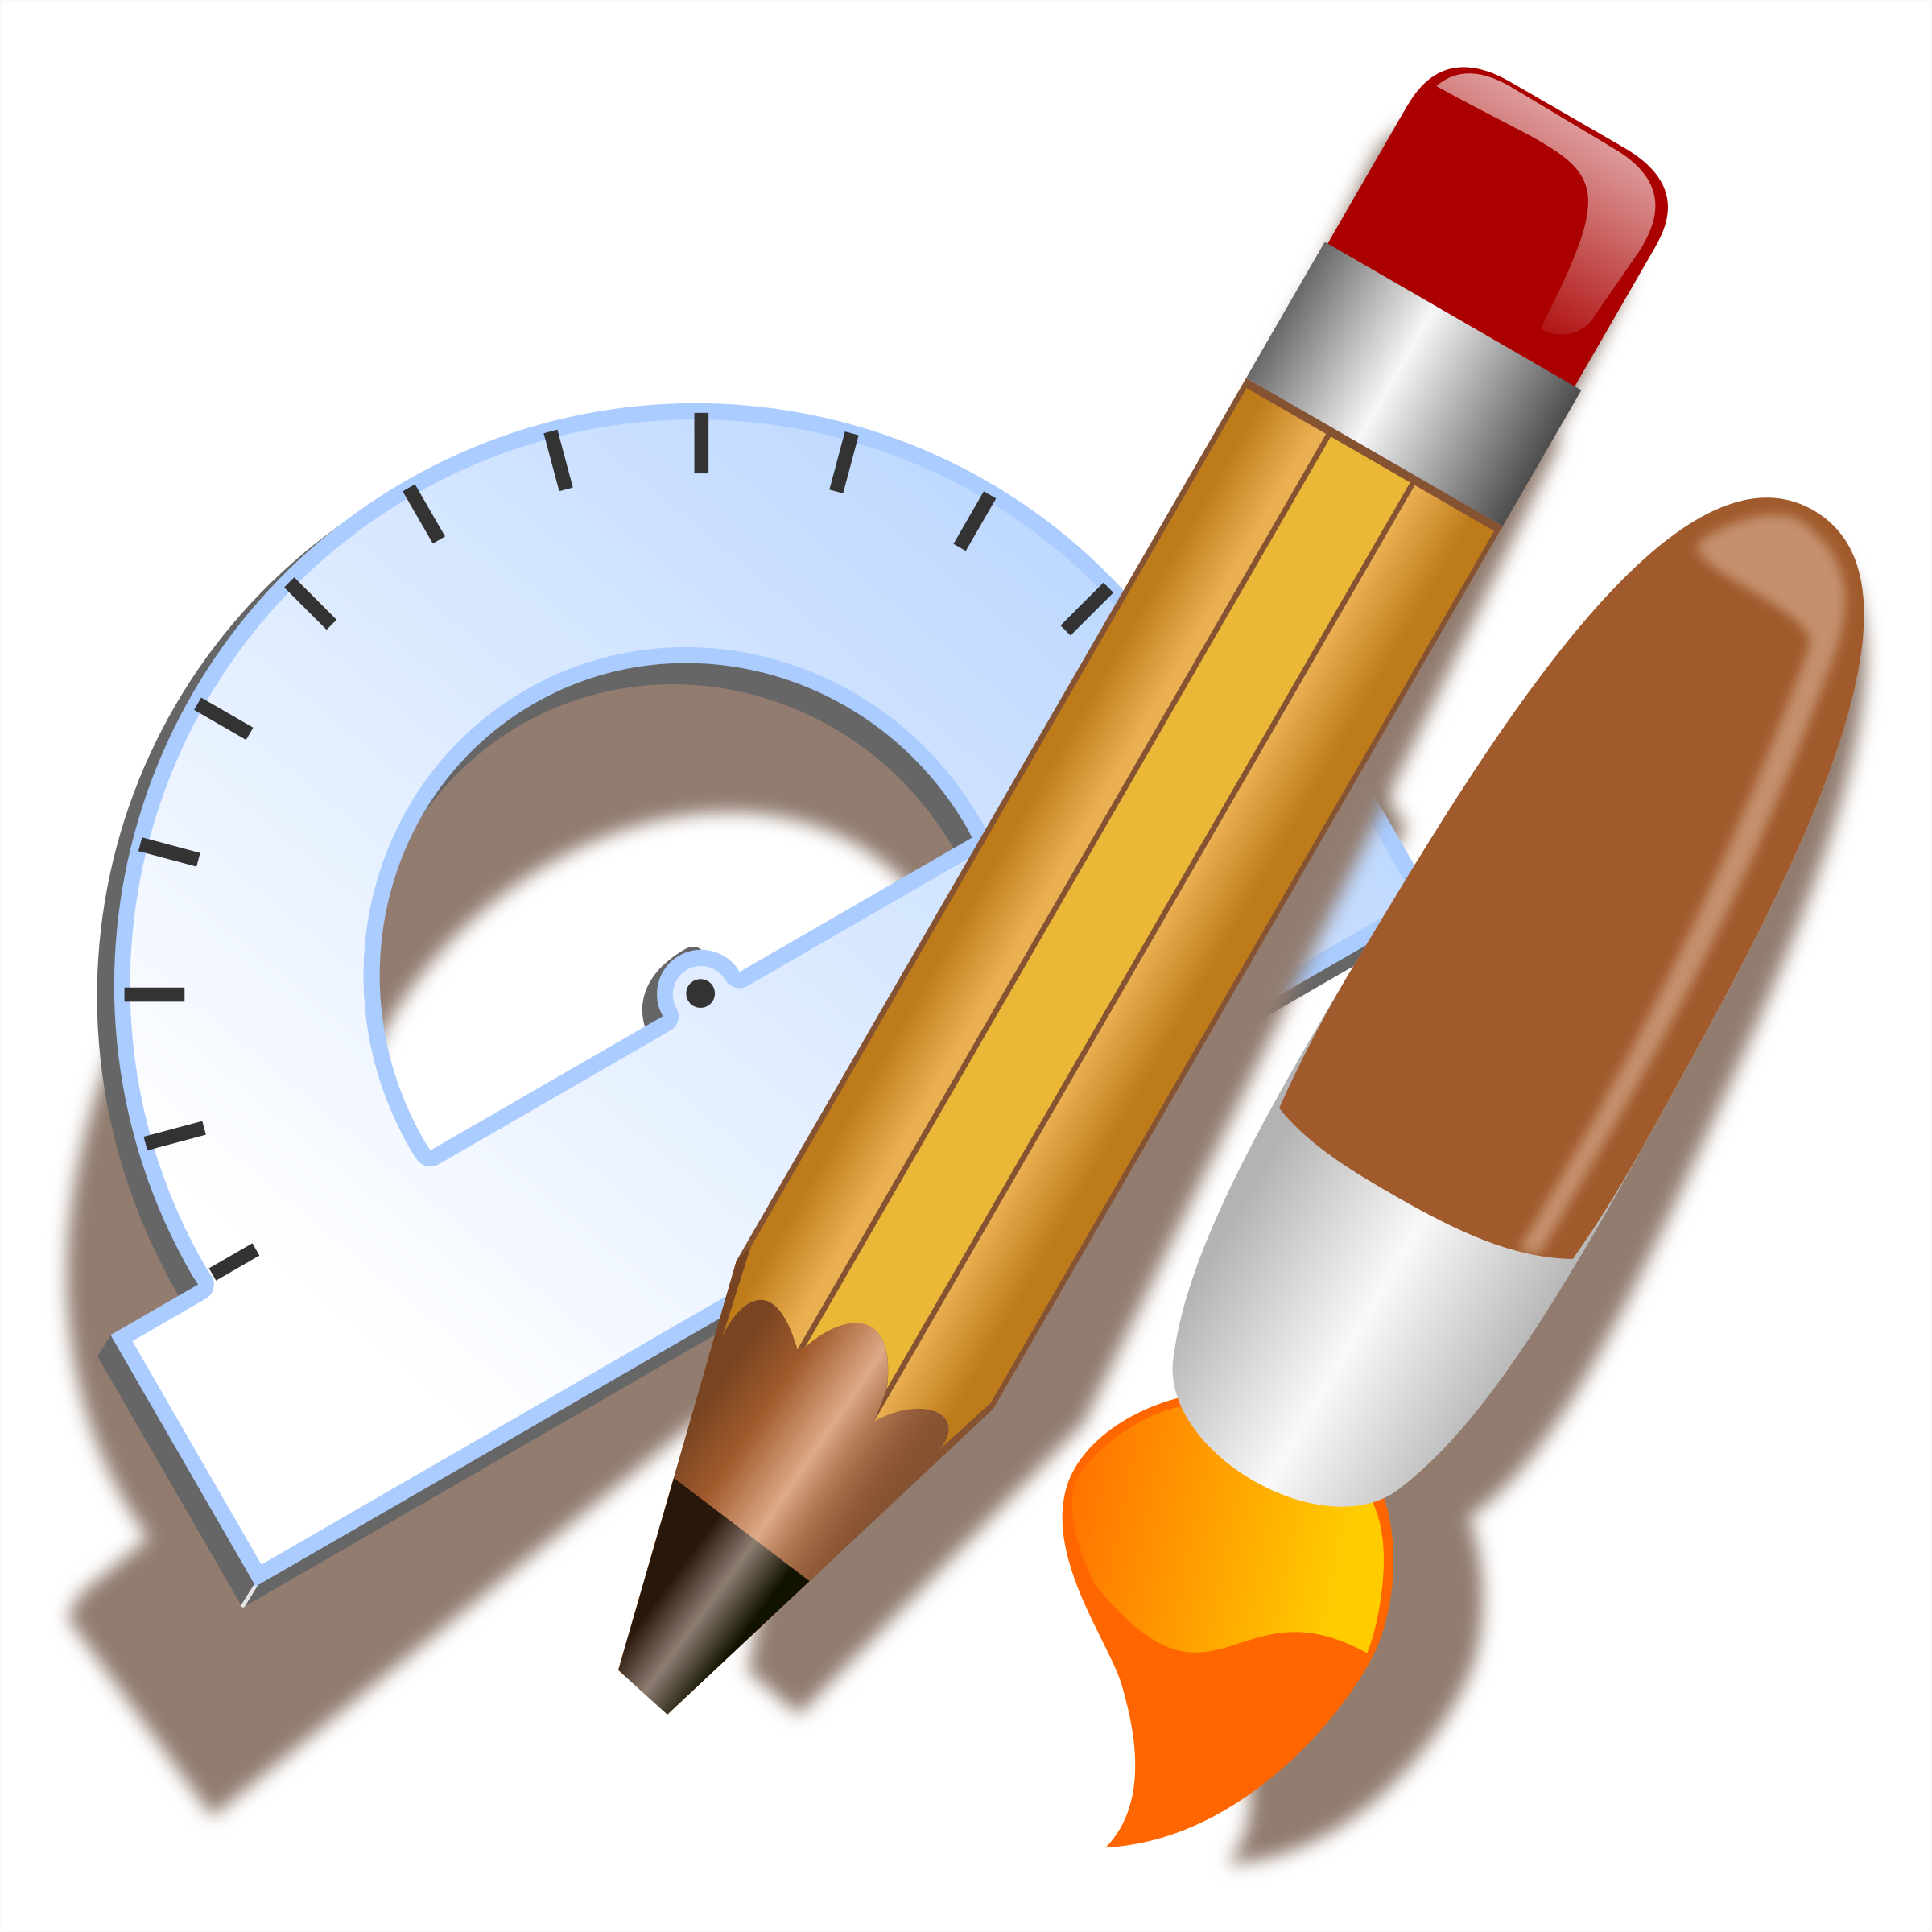 Scribble Drawing Tool : Clipart drawing tools icon